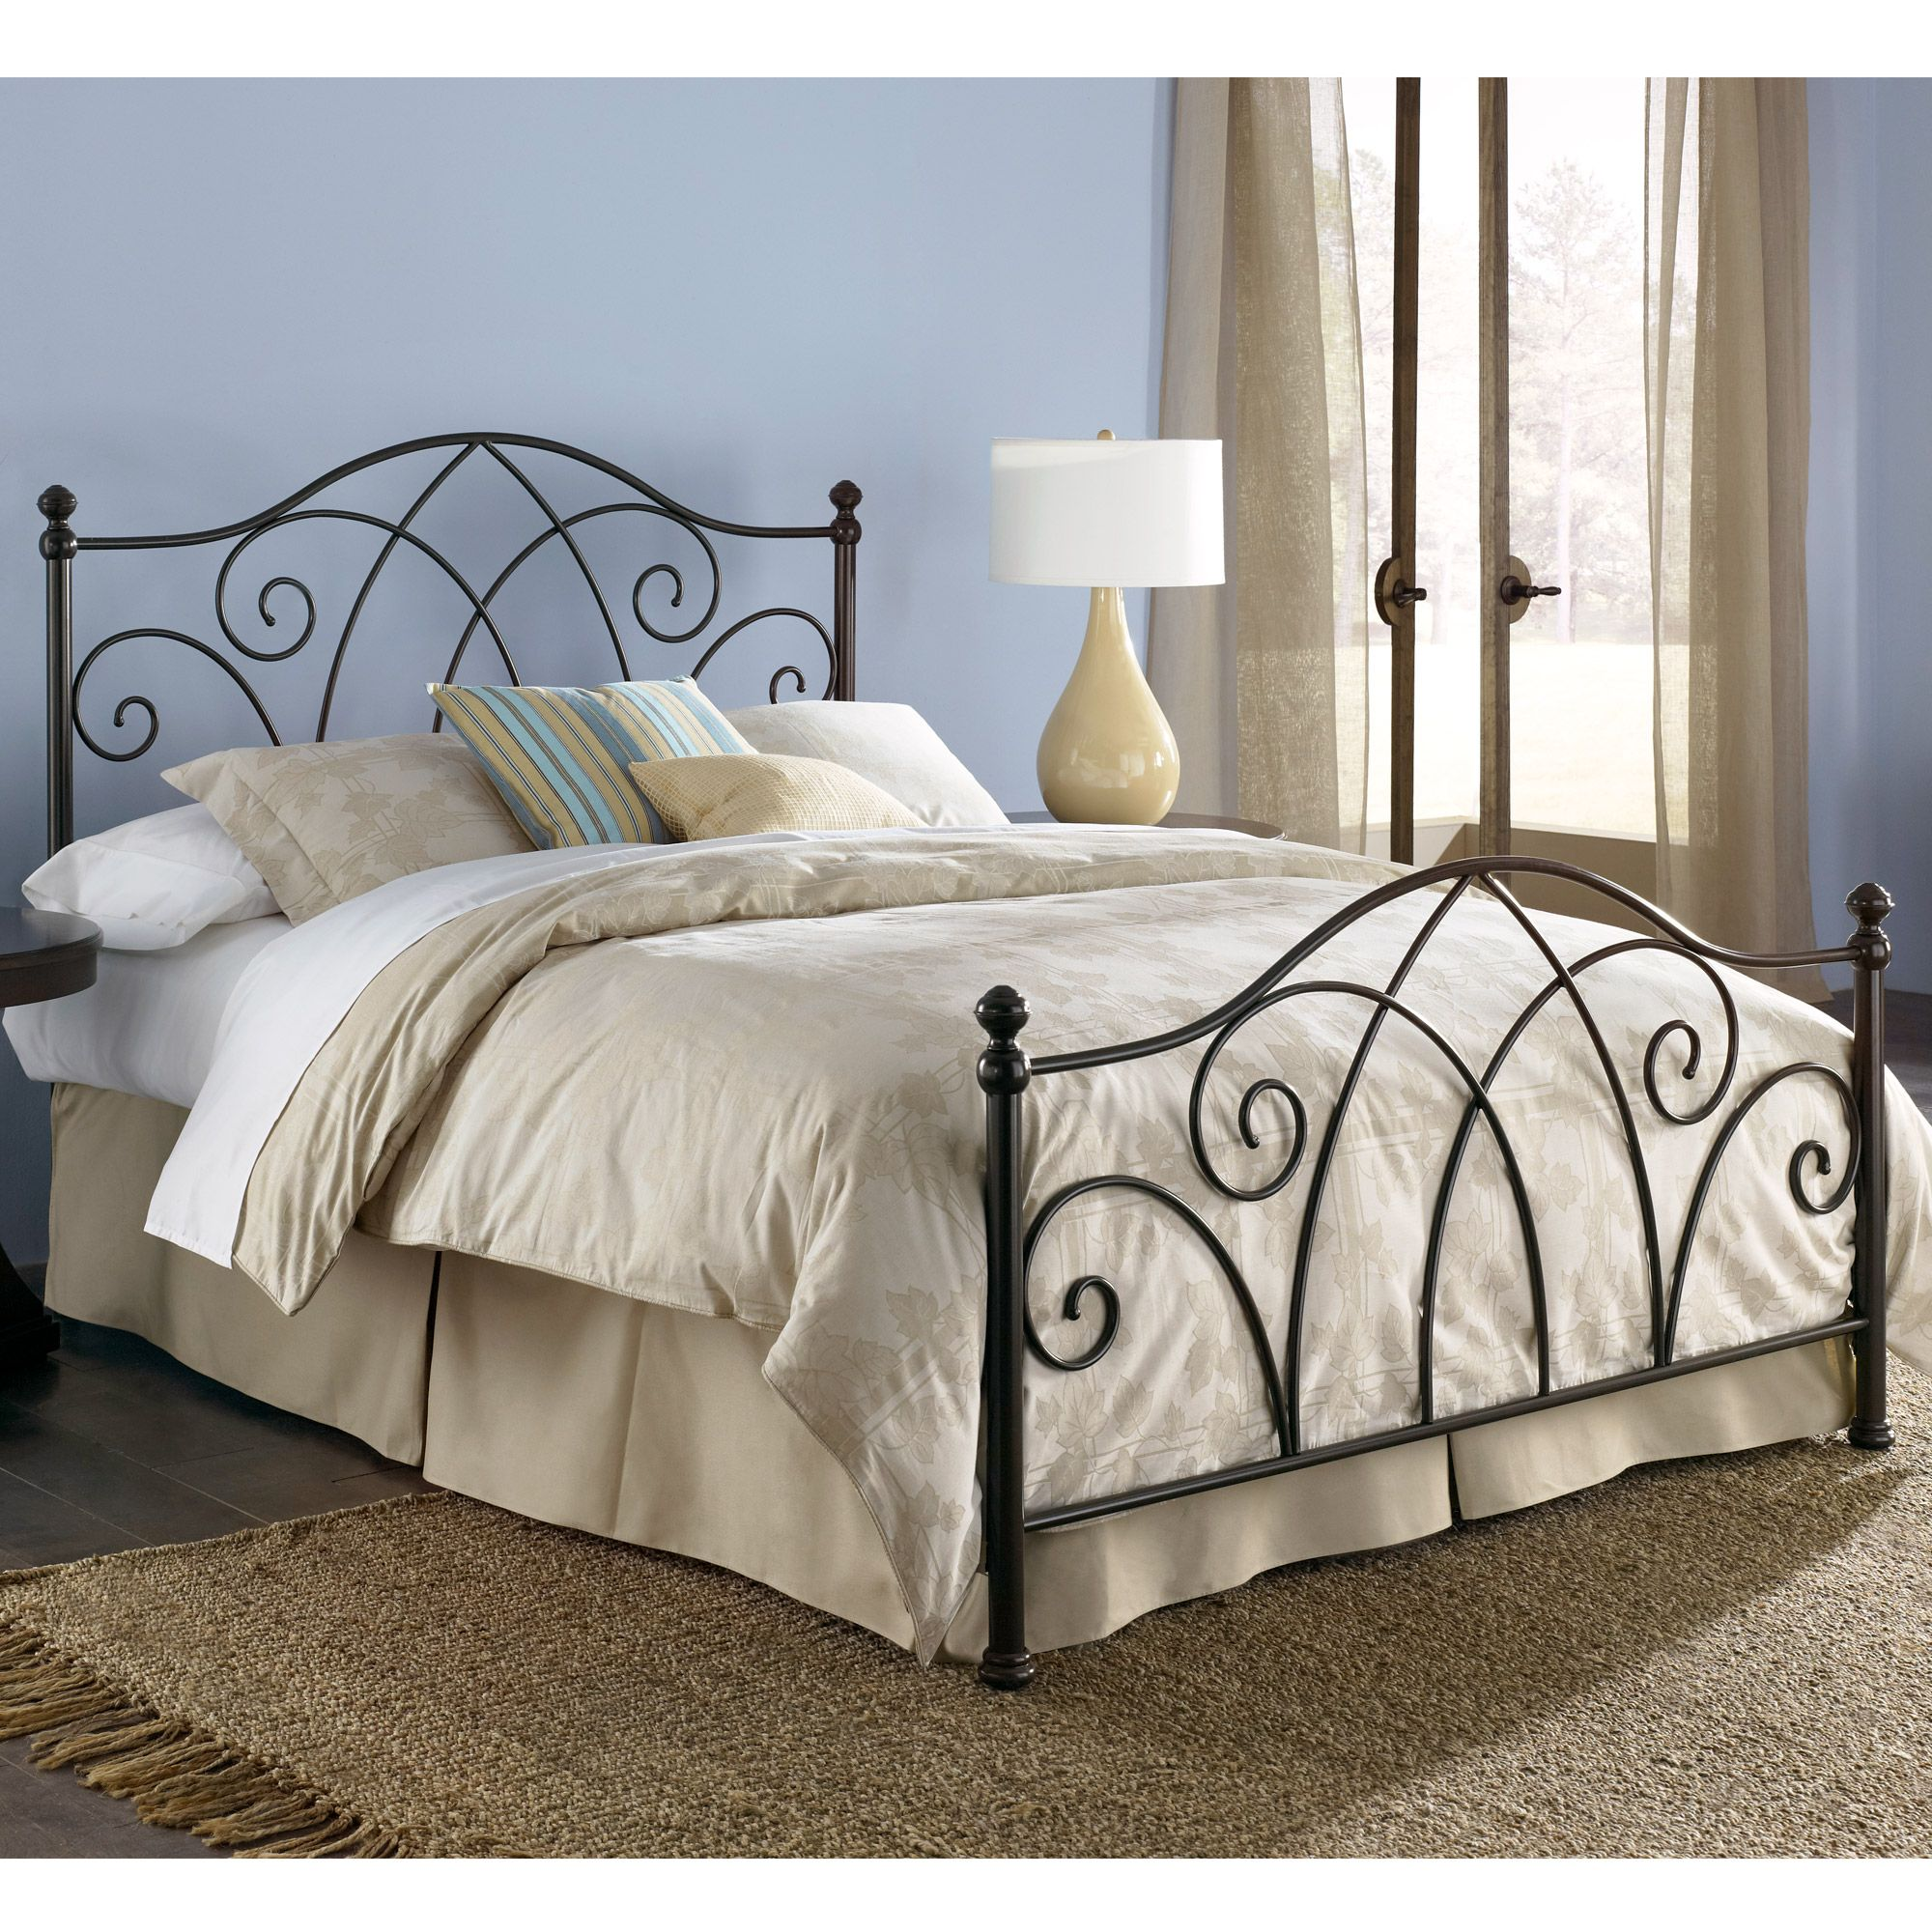 Perfect Fashion Bed Group Deland Bed   The Deland Bed Uses Traditional Wrought Iron  To Dress Up Your Master Bedroom. This Headboard Has A Classic Shape Made Of  ...